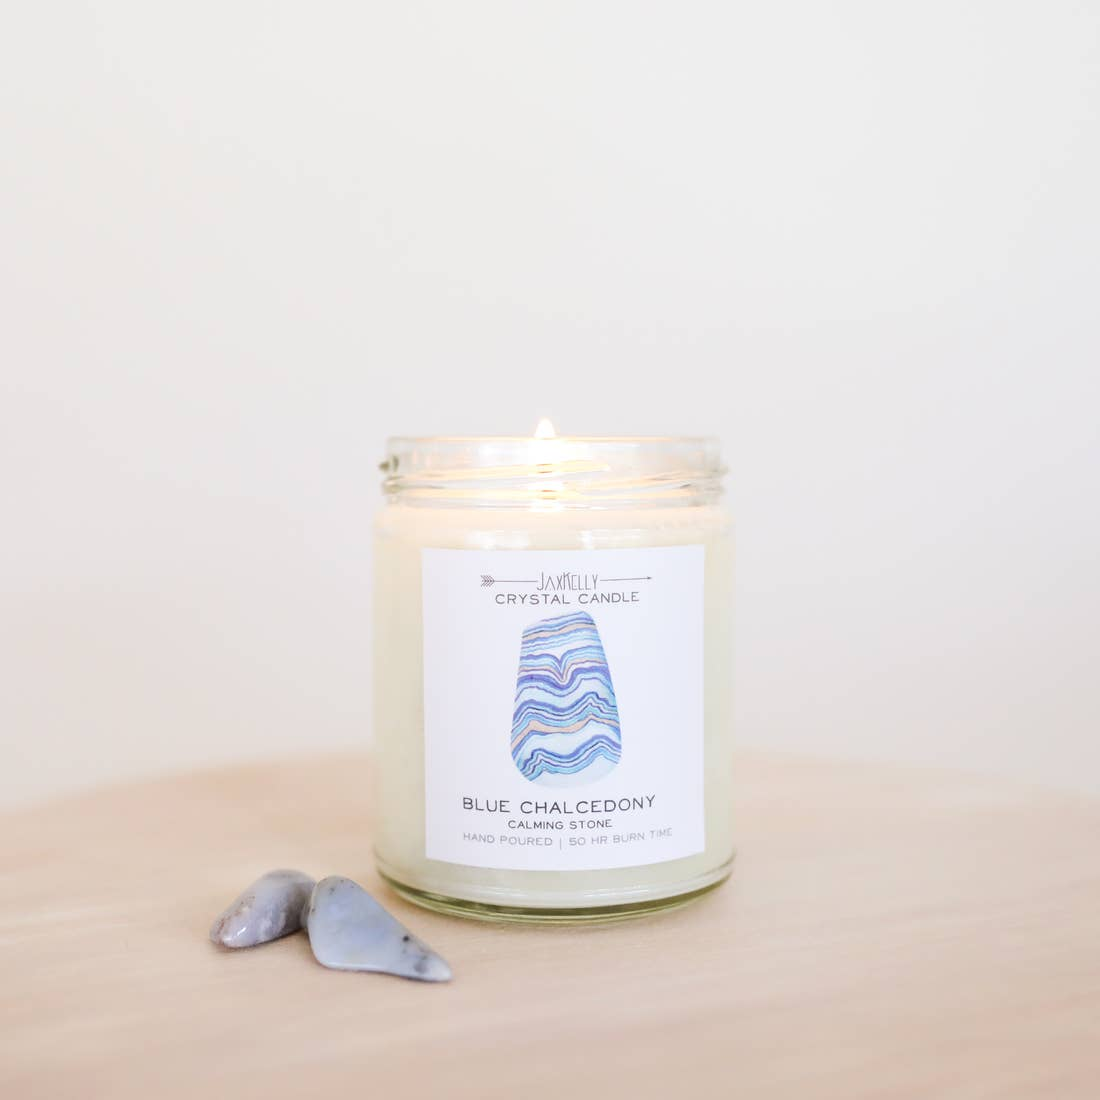 Blue Chalcedony Crystal Candle - Calming | 9oz